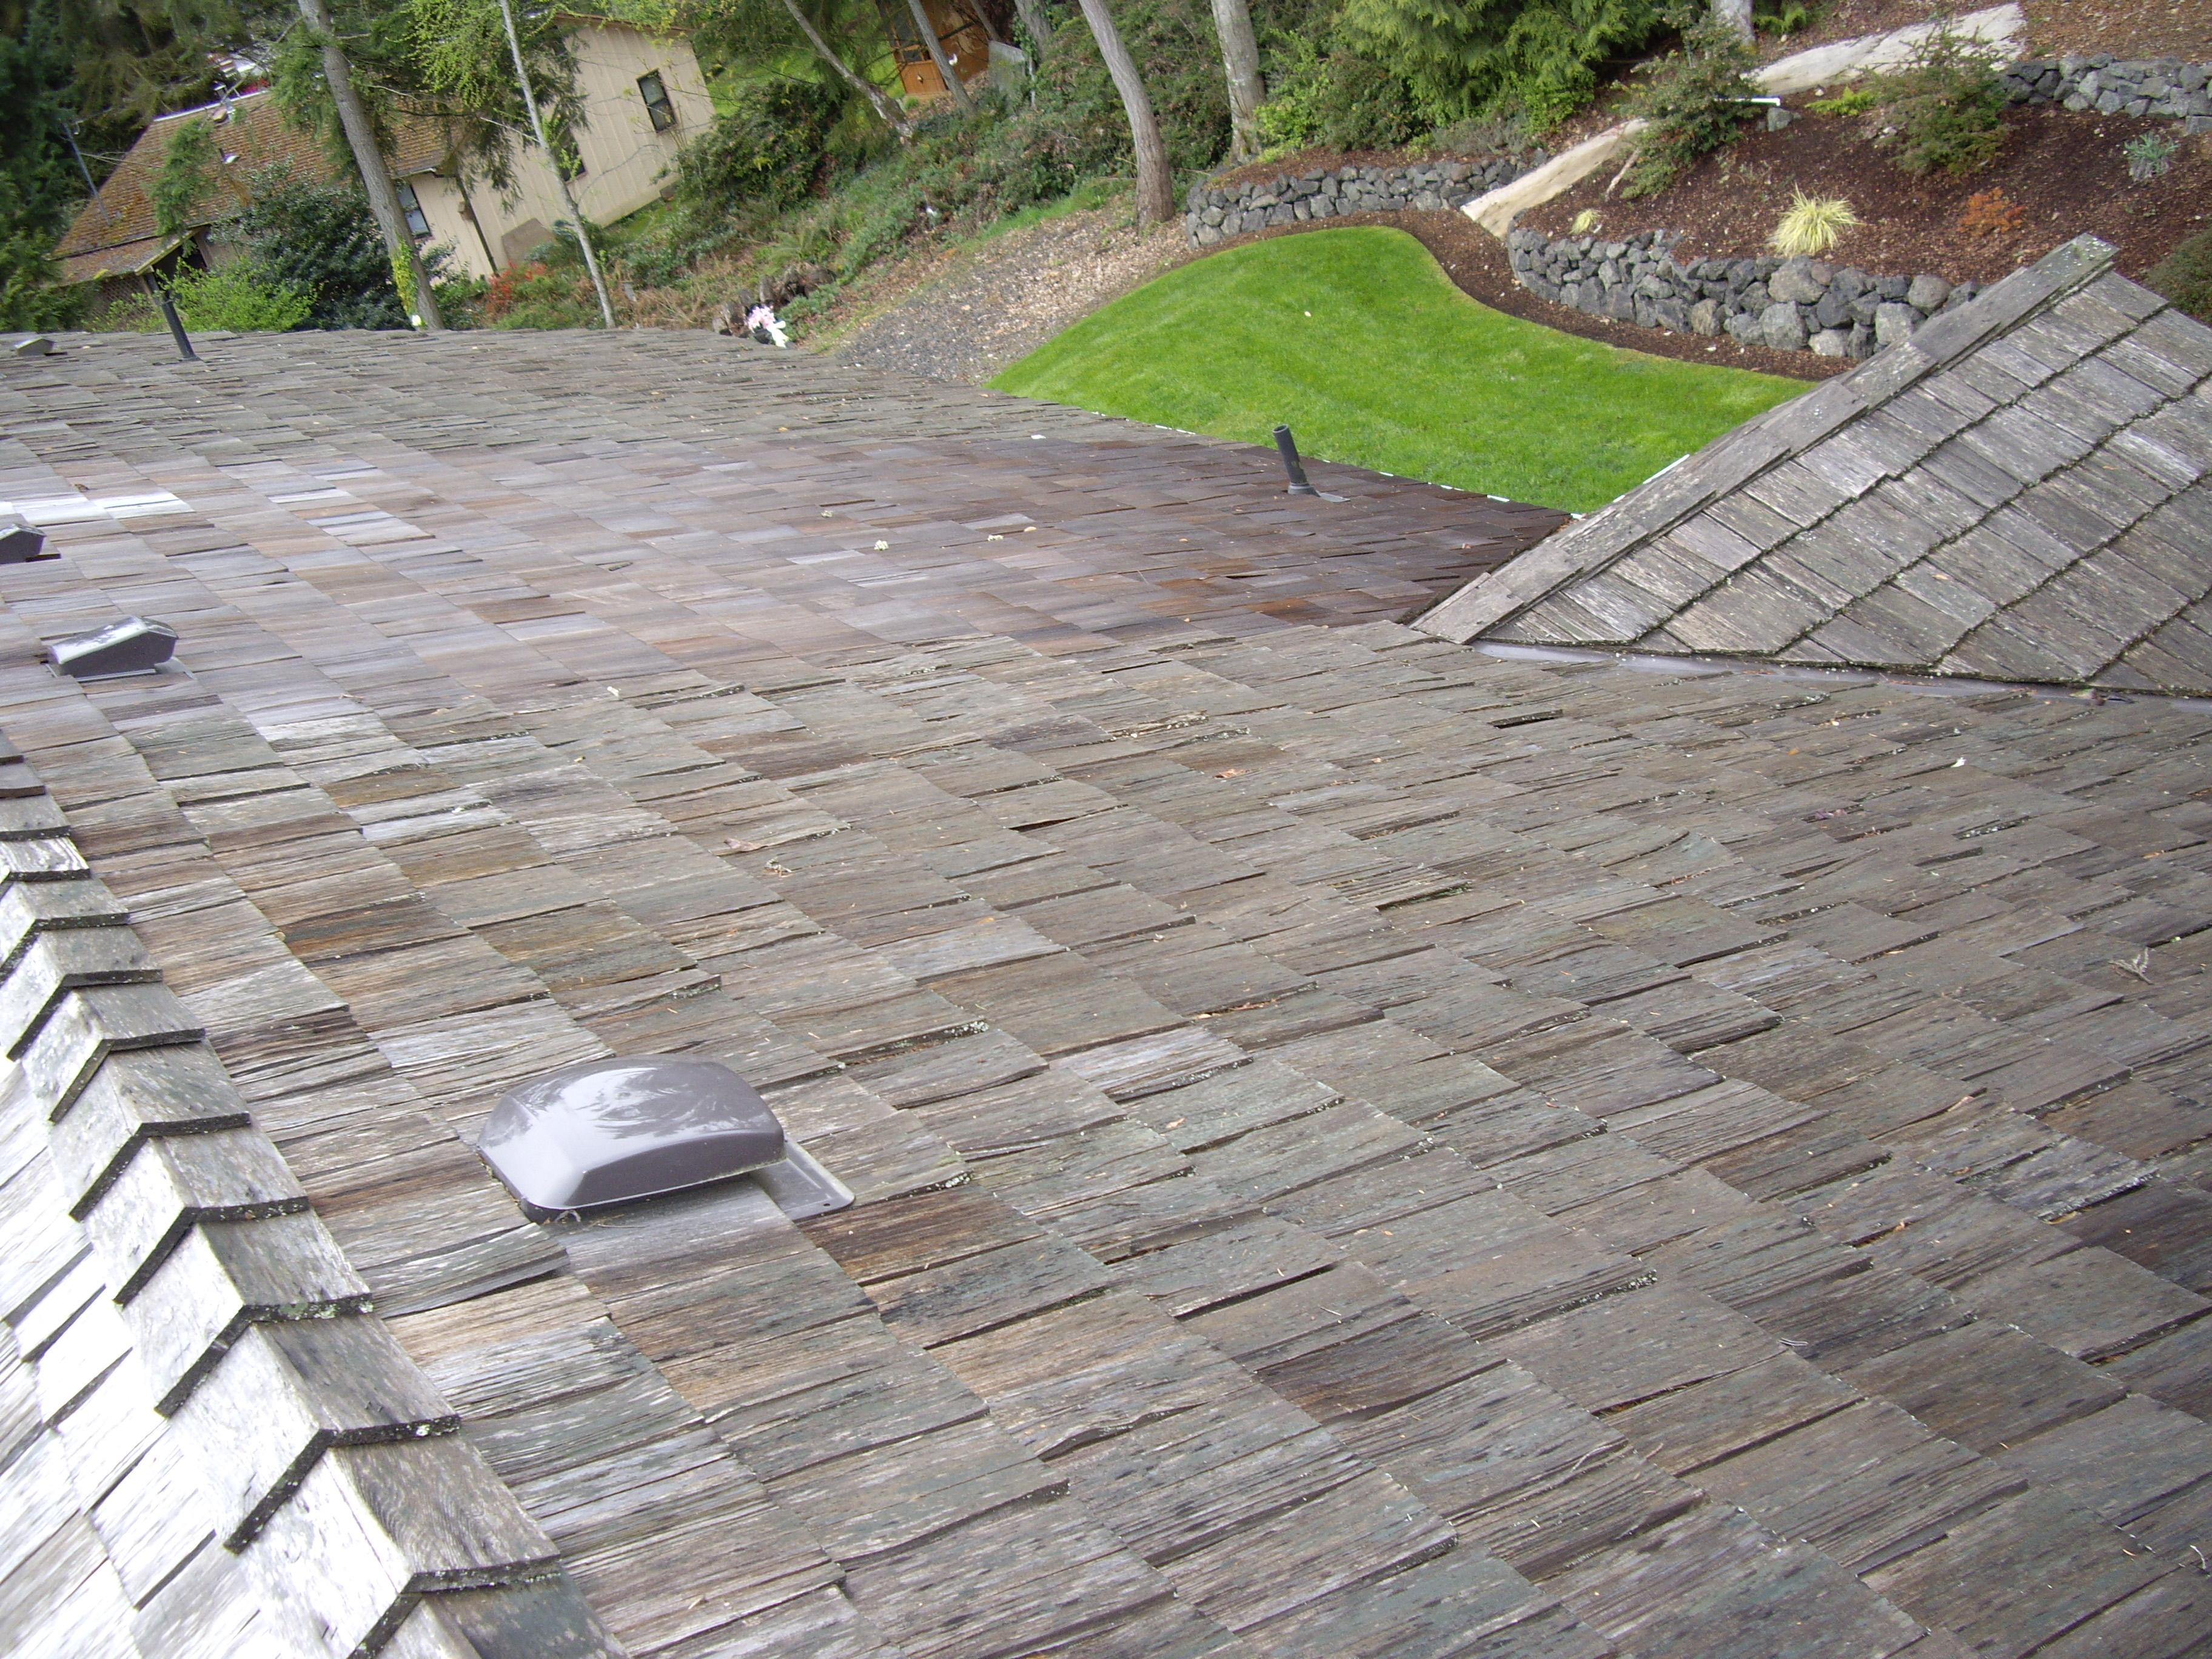 Roof replacement, cleaning services in Seattle. Get affordable pricing and quality services today